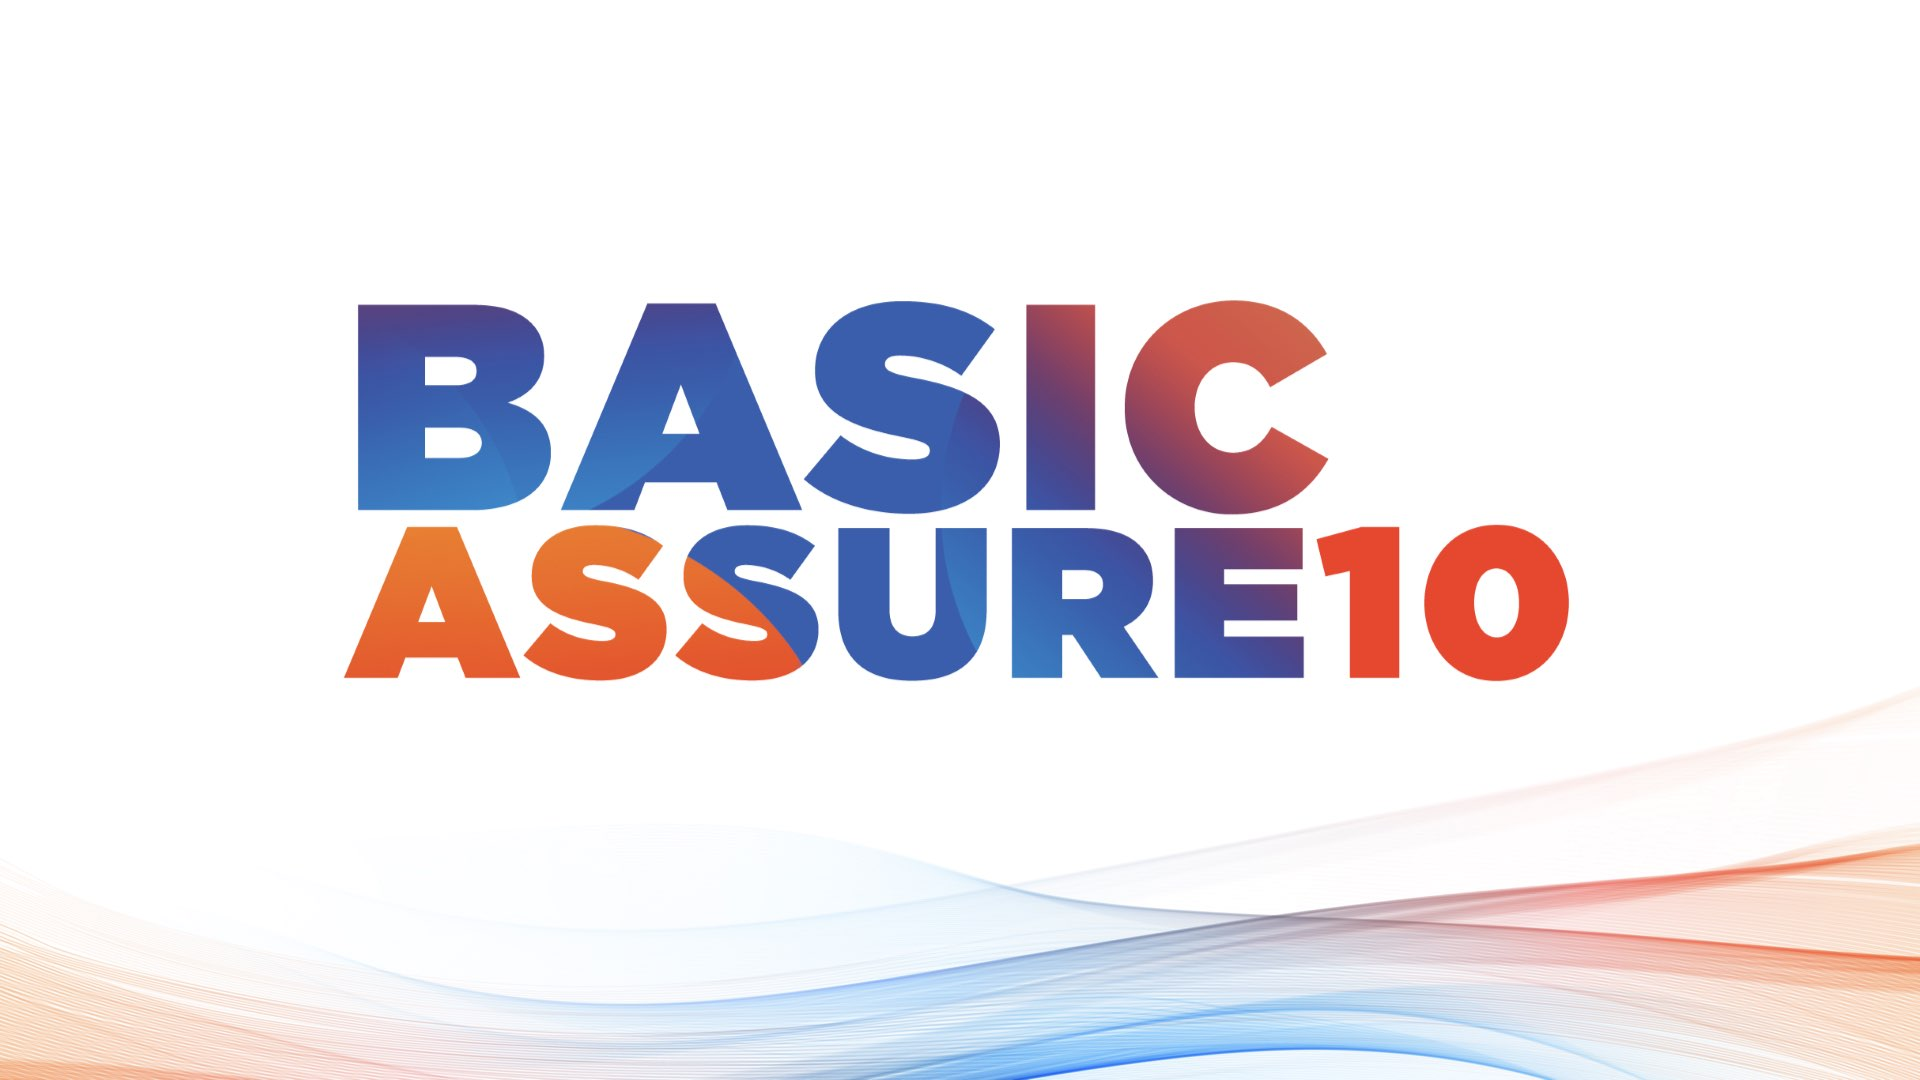 InLife Launches Basic Assure 10: Life Insurance with Guaranteed Cash Payouts